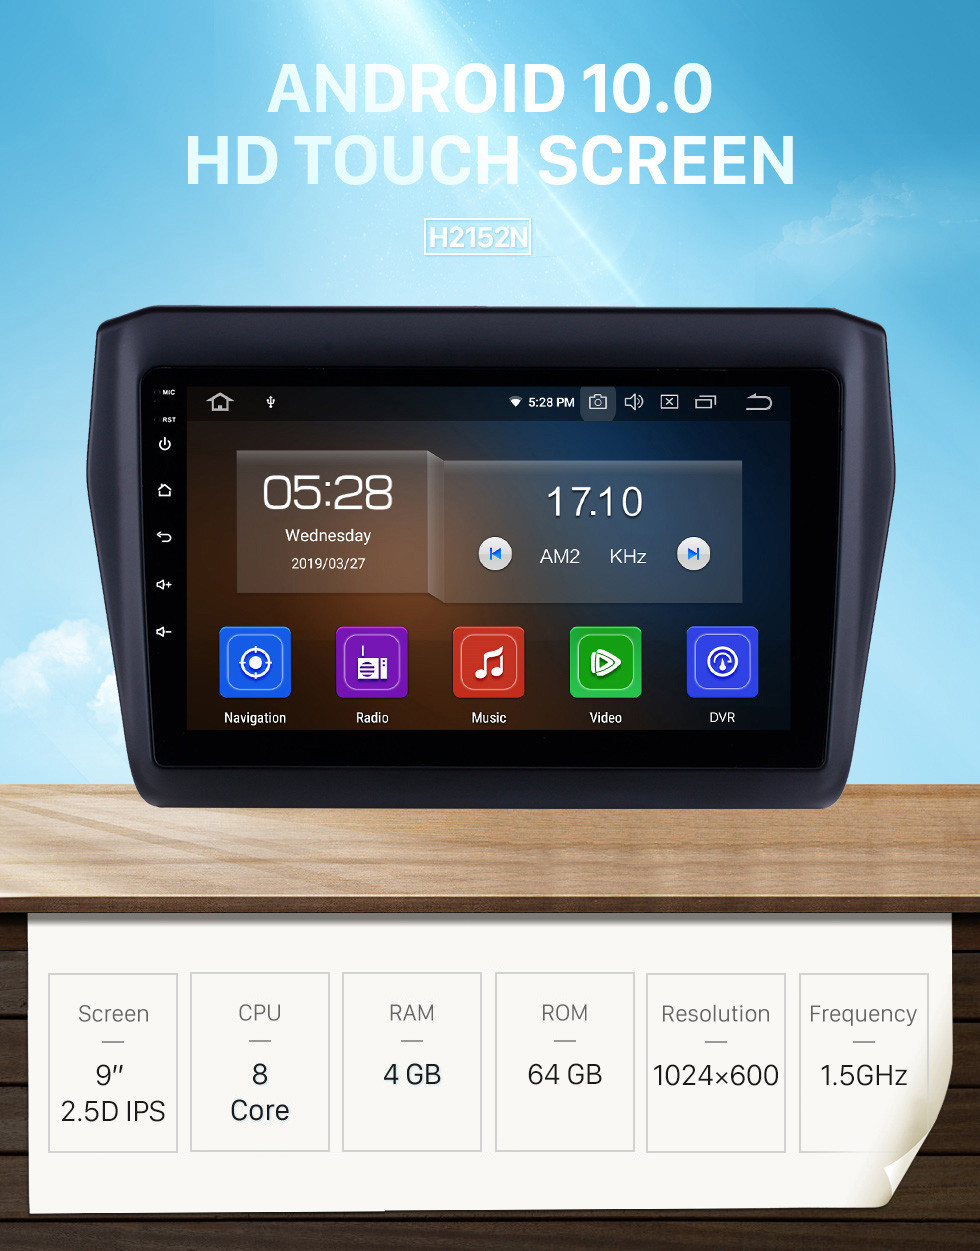 Seicane 2017-2019 SUZUKI Swift 9 Inch Android 10.0 HD Touchscreen Car Stereo GPS Navigation System Radio Bluetooth  WIFI  USB Support DAB+ OBDII SWC